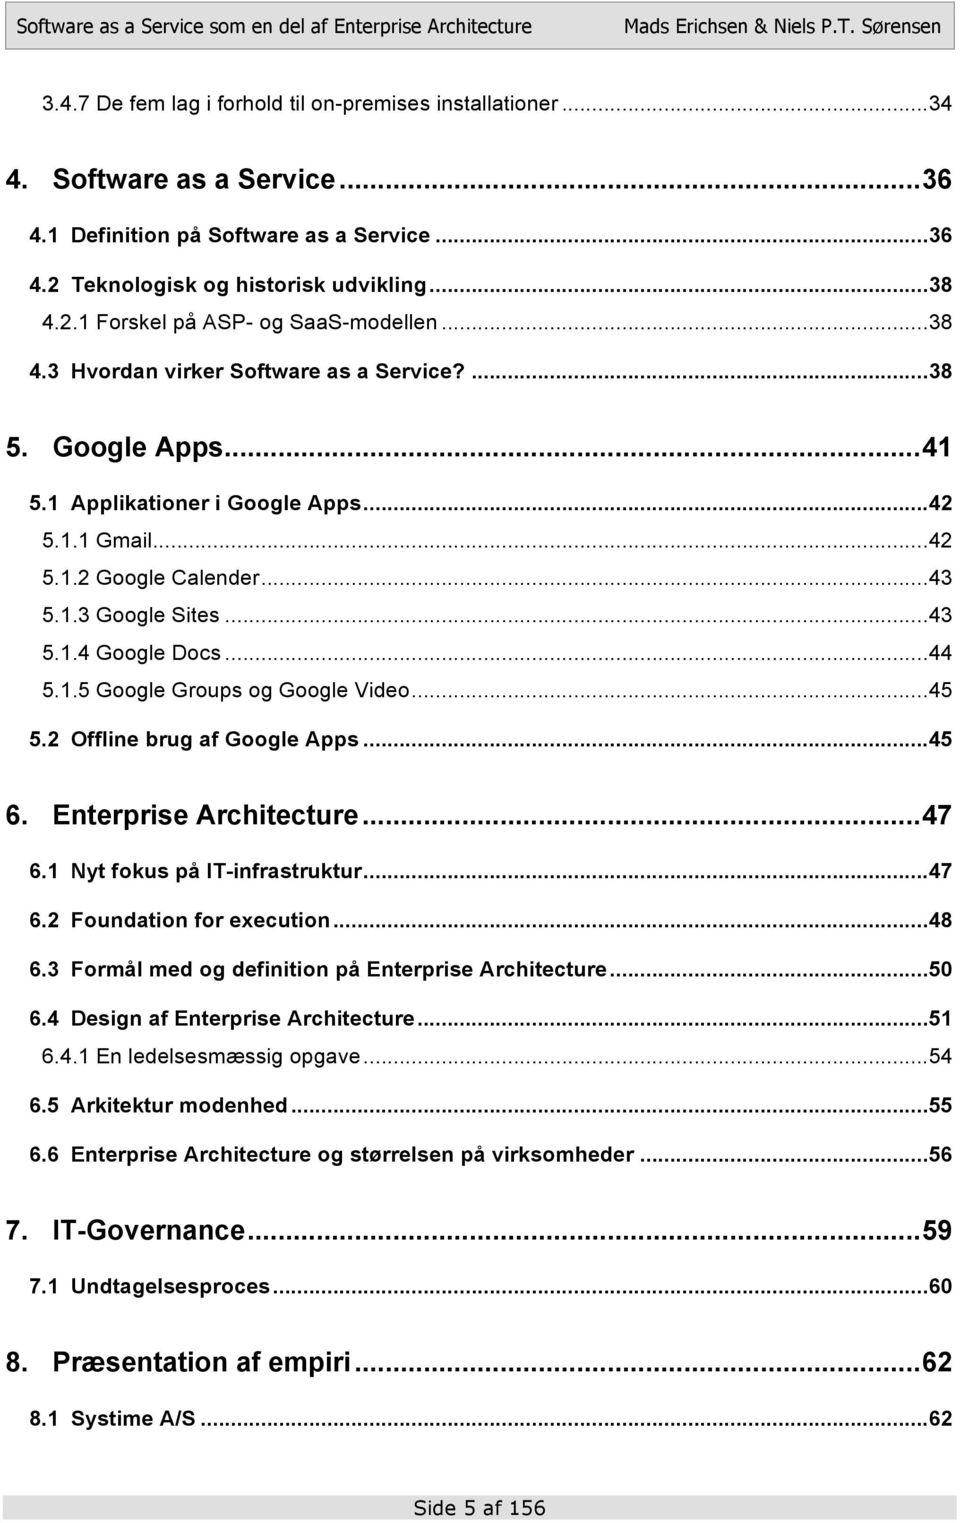 1.5 Google Groups og Google Video...45 5.2 Offline brug af Google Apps...45 6. Enterprise Architecture...47 6.1 Nyt fokus på IT-infrastruktur...47 6.2 Foundation for execution...48 6.